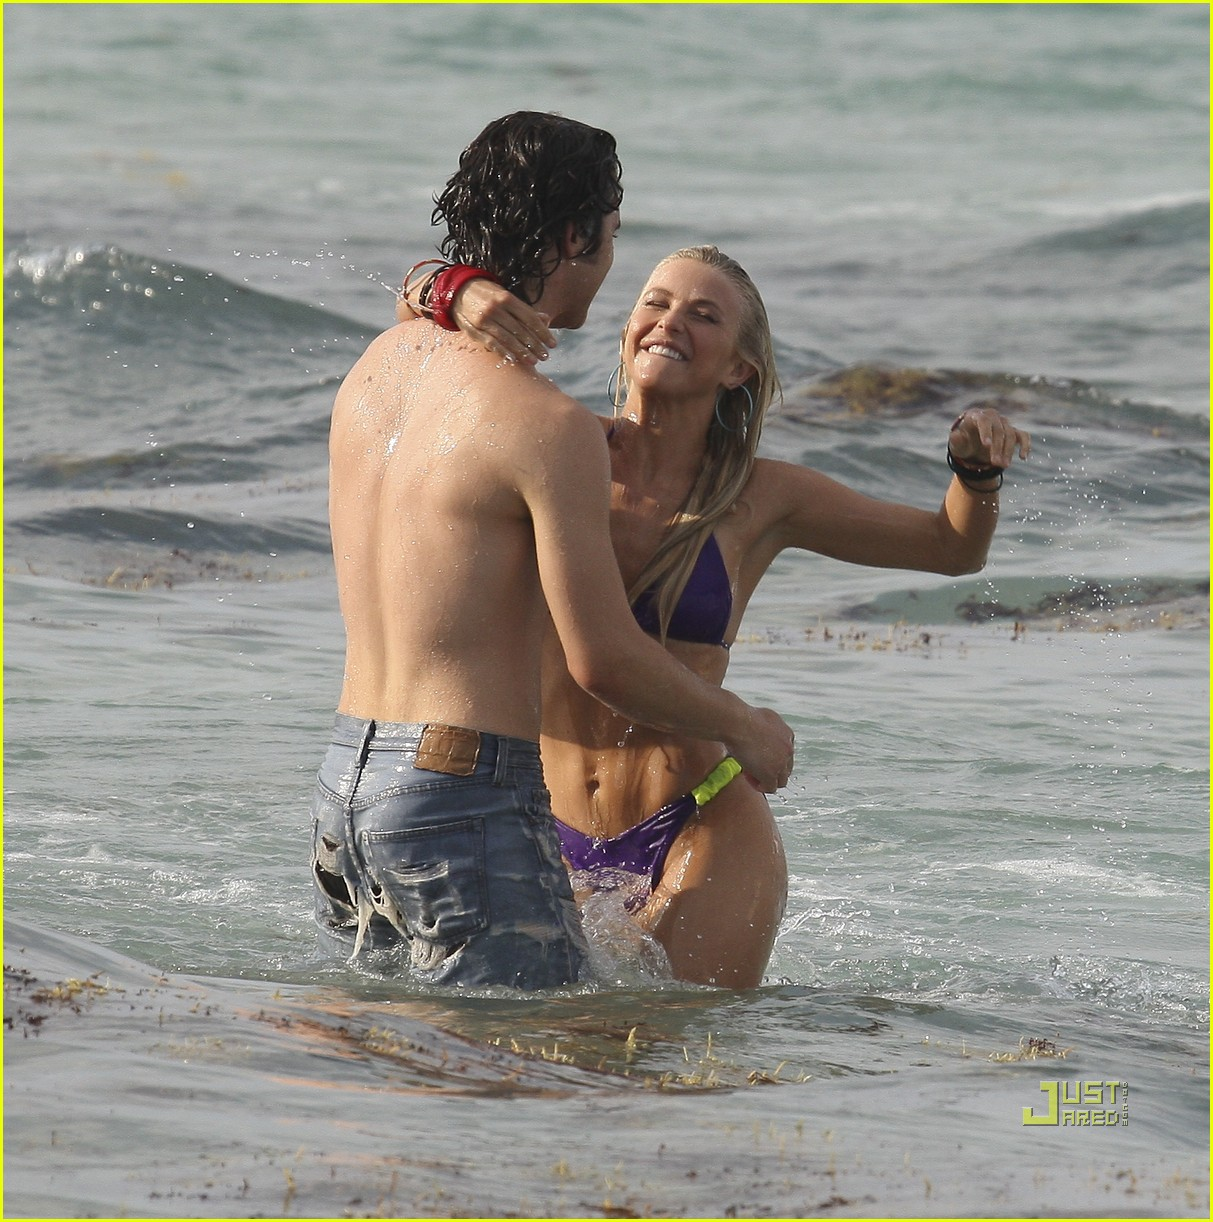 julianne hough bikini kiss diega boneta 11